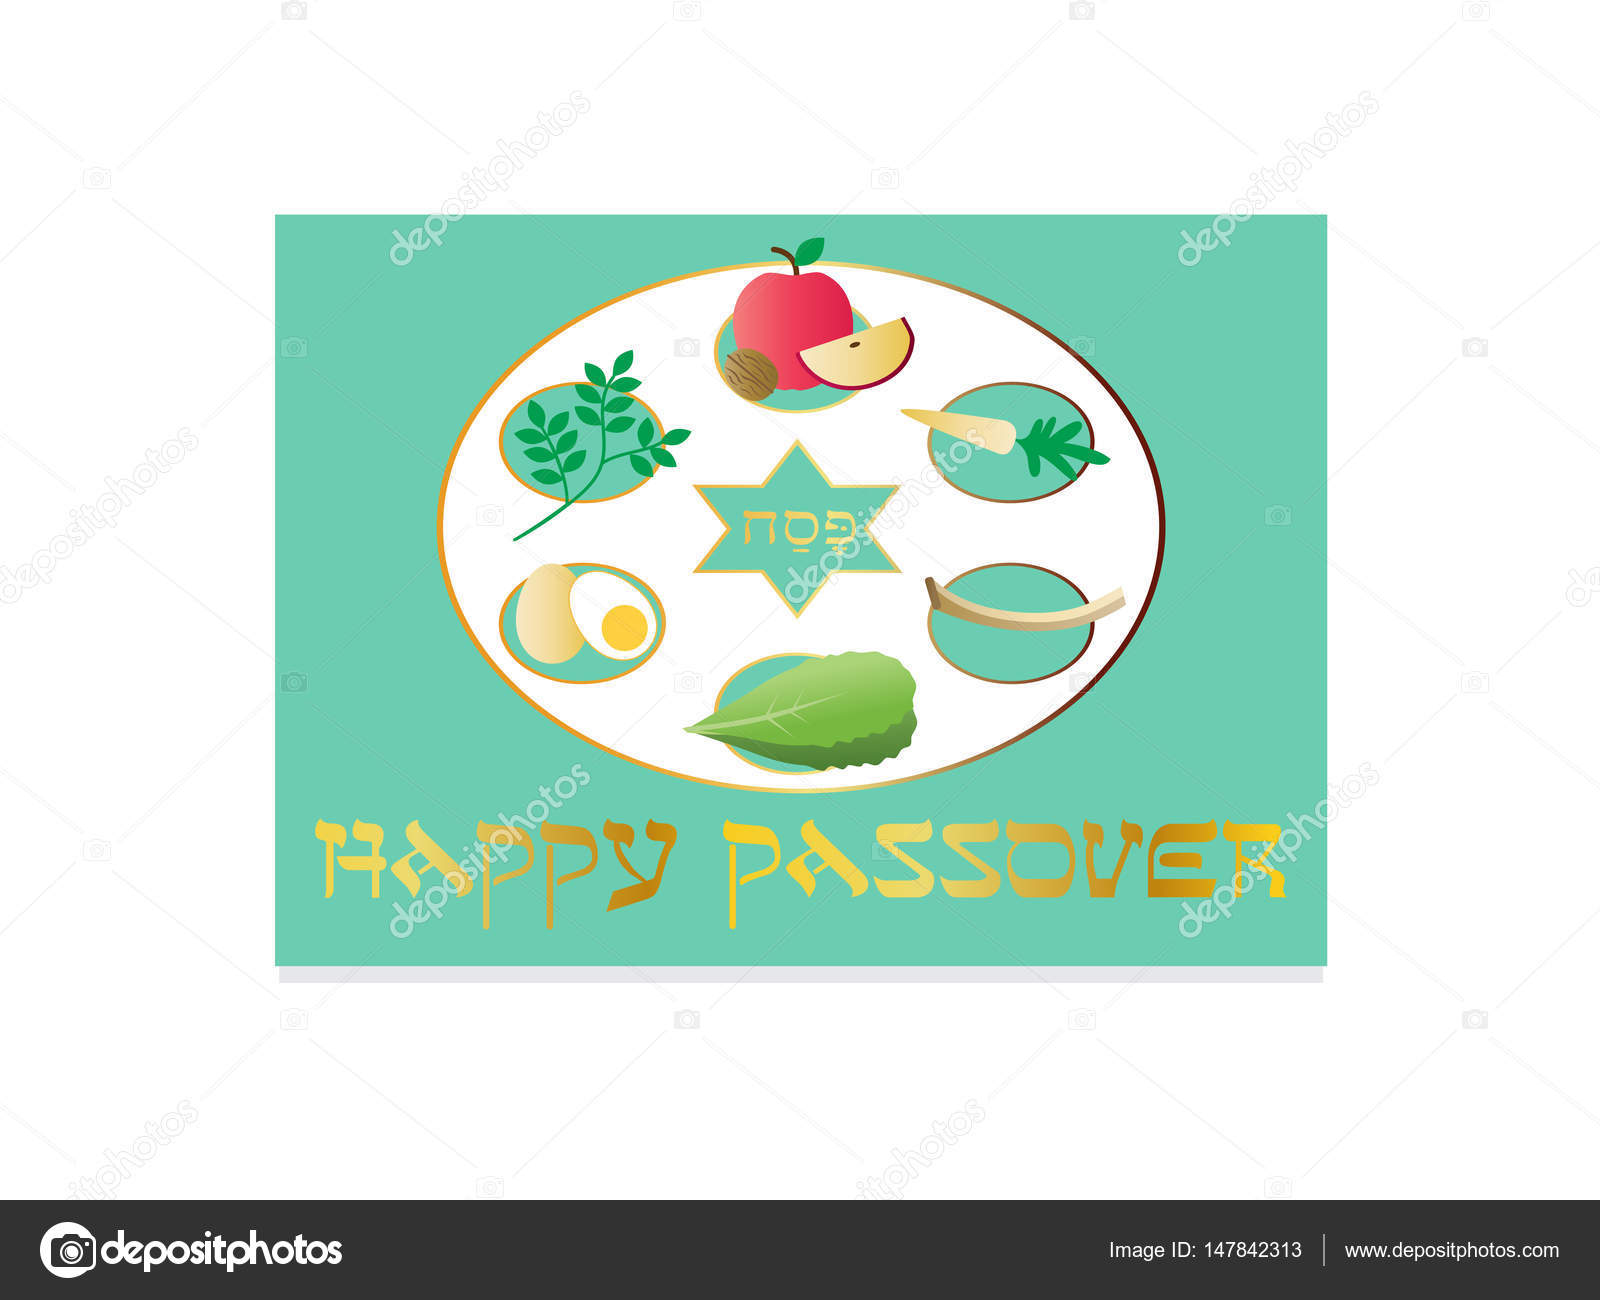 Happy passover seder plate stock vector scrapster 147842313 happy passover seder plate stock vector buycottarizona